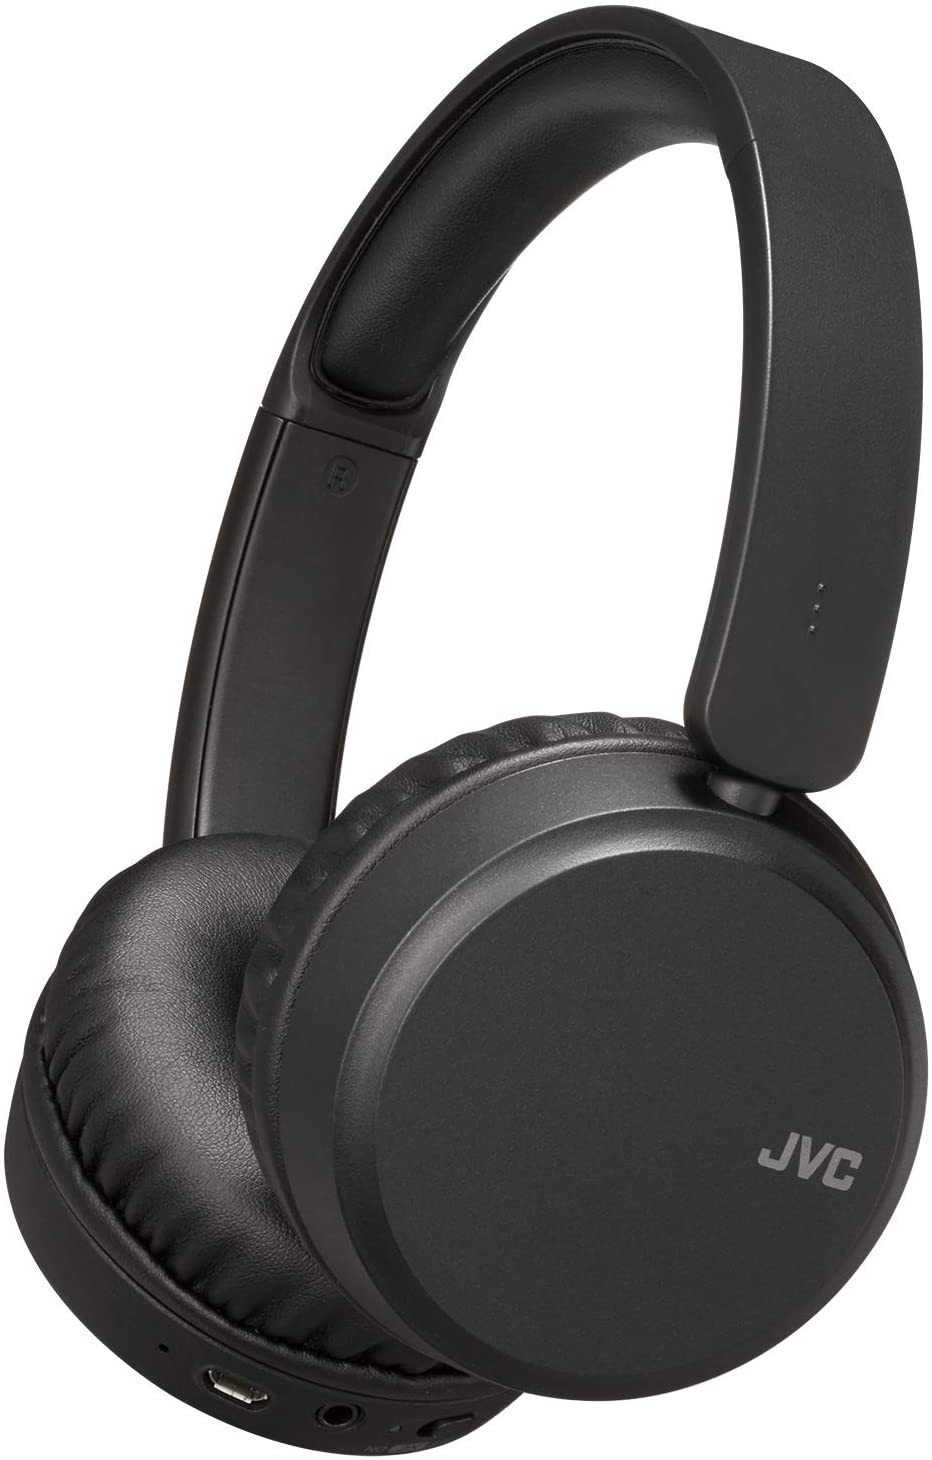 JVC Noise Cancelling Wireless Headpones, Bluetooth 4.1, Bass Boost Function, Voice Assistant Compatible - HAS65BNB(Black)